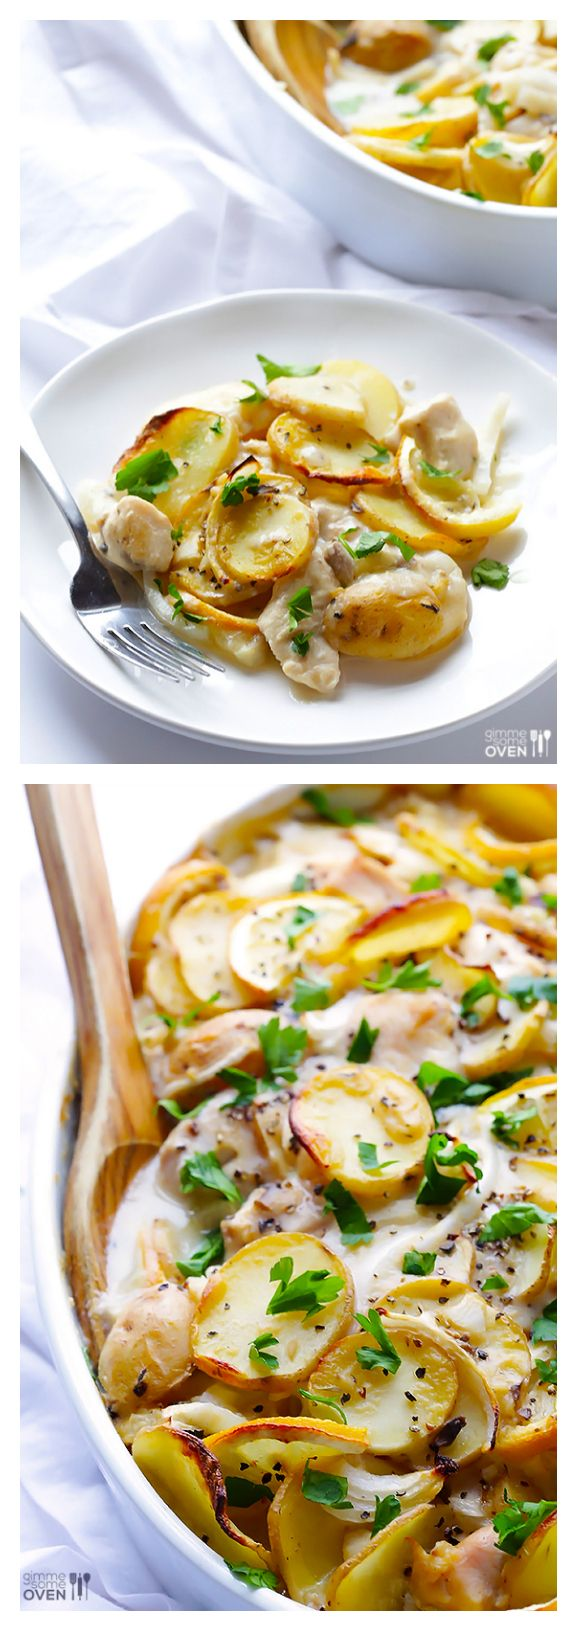 Easy Lemon Chicken Potato Casserole http://gimmesomeoven.com